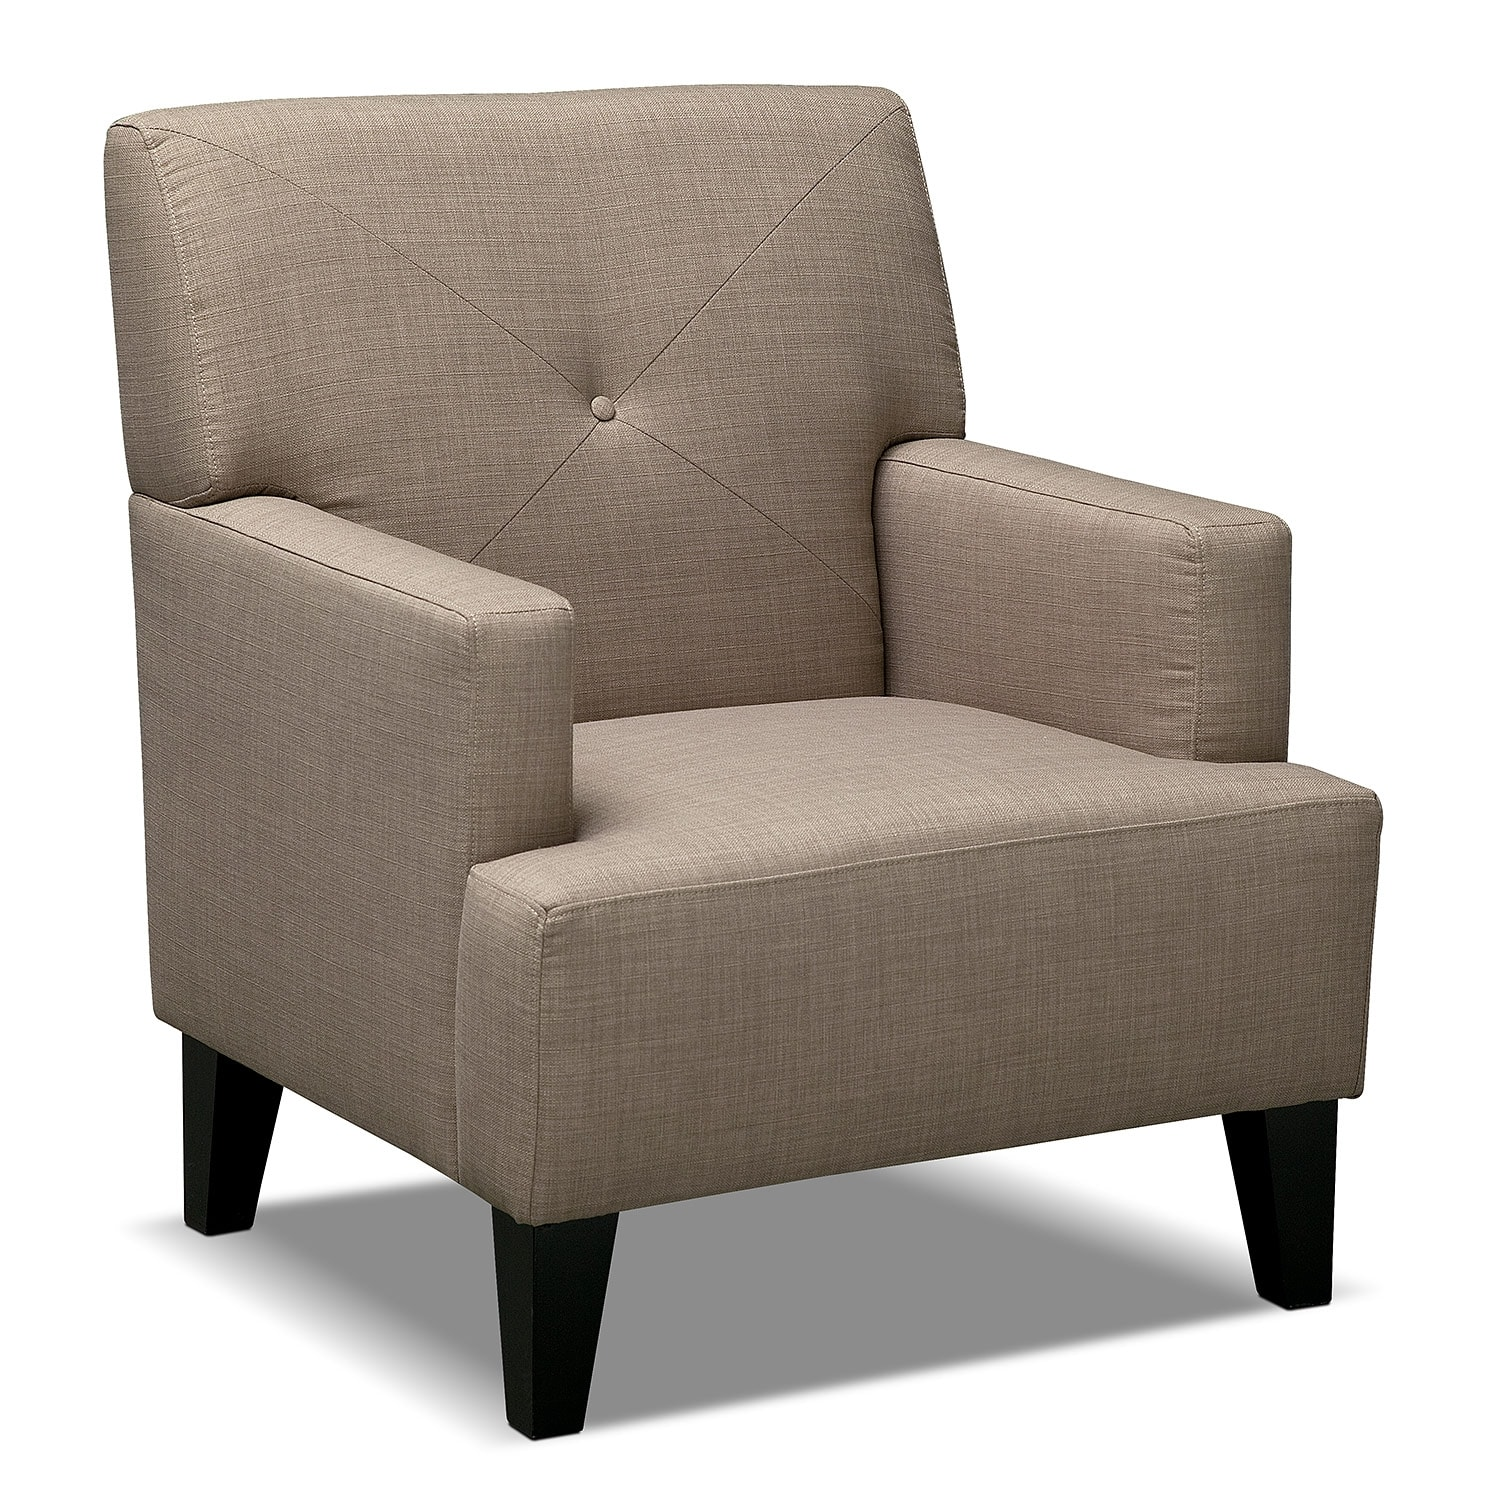 accent chair avalon wheat value city furniture. Black Bedroom Furniture Sets. Home Design Ideas